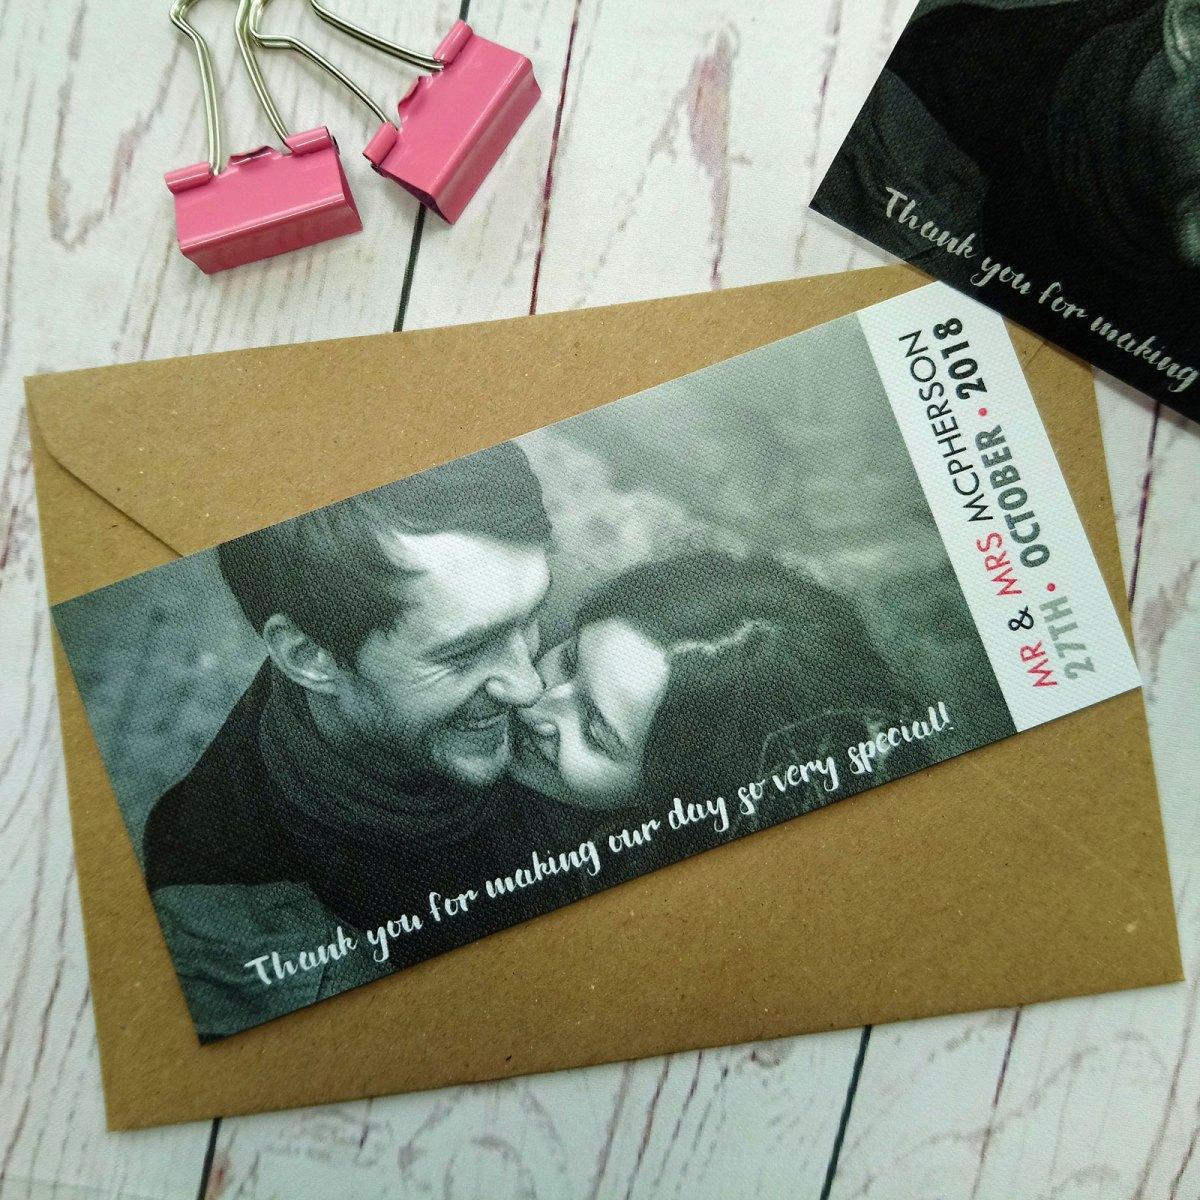 Picture in black and white for the Boy Meets Girl Thank You Card. Writing on white, grey, black and pink